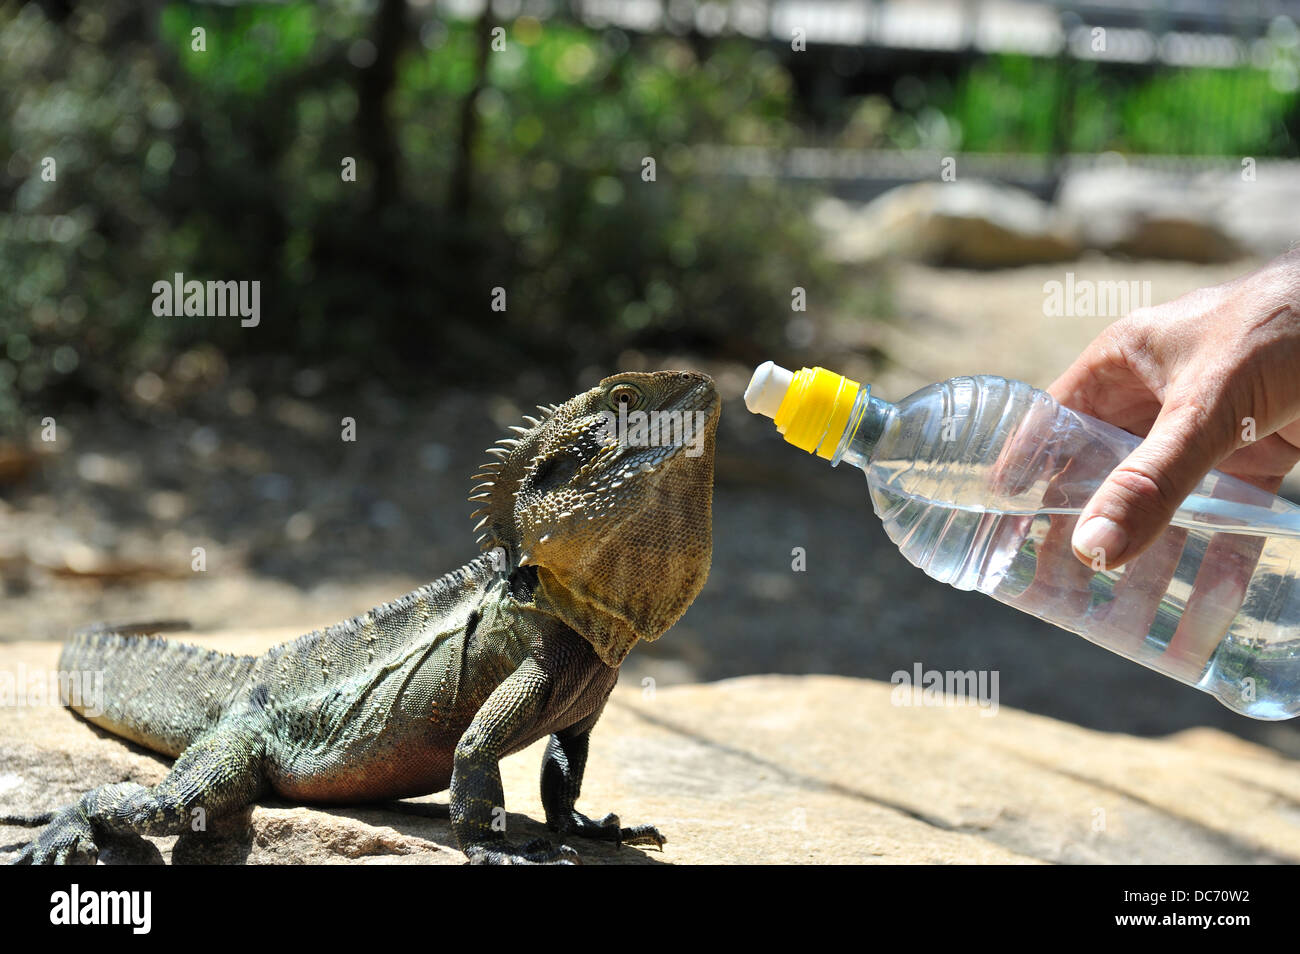 Eastern Water Dragon (Physignathus lesueurii) being offered drink from bottle. - Stock Image